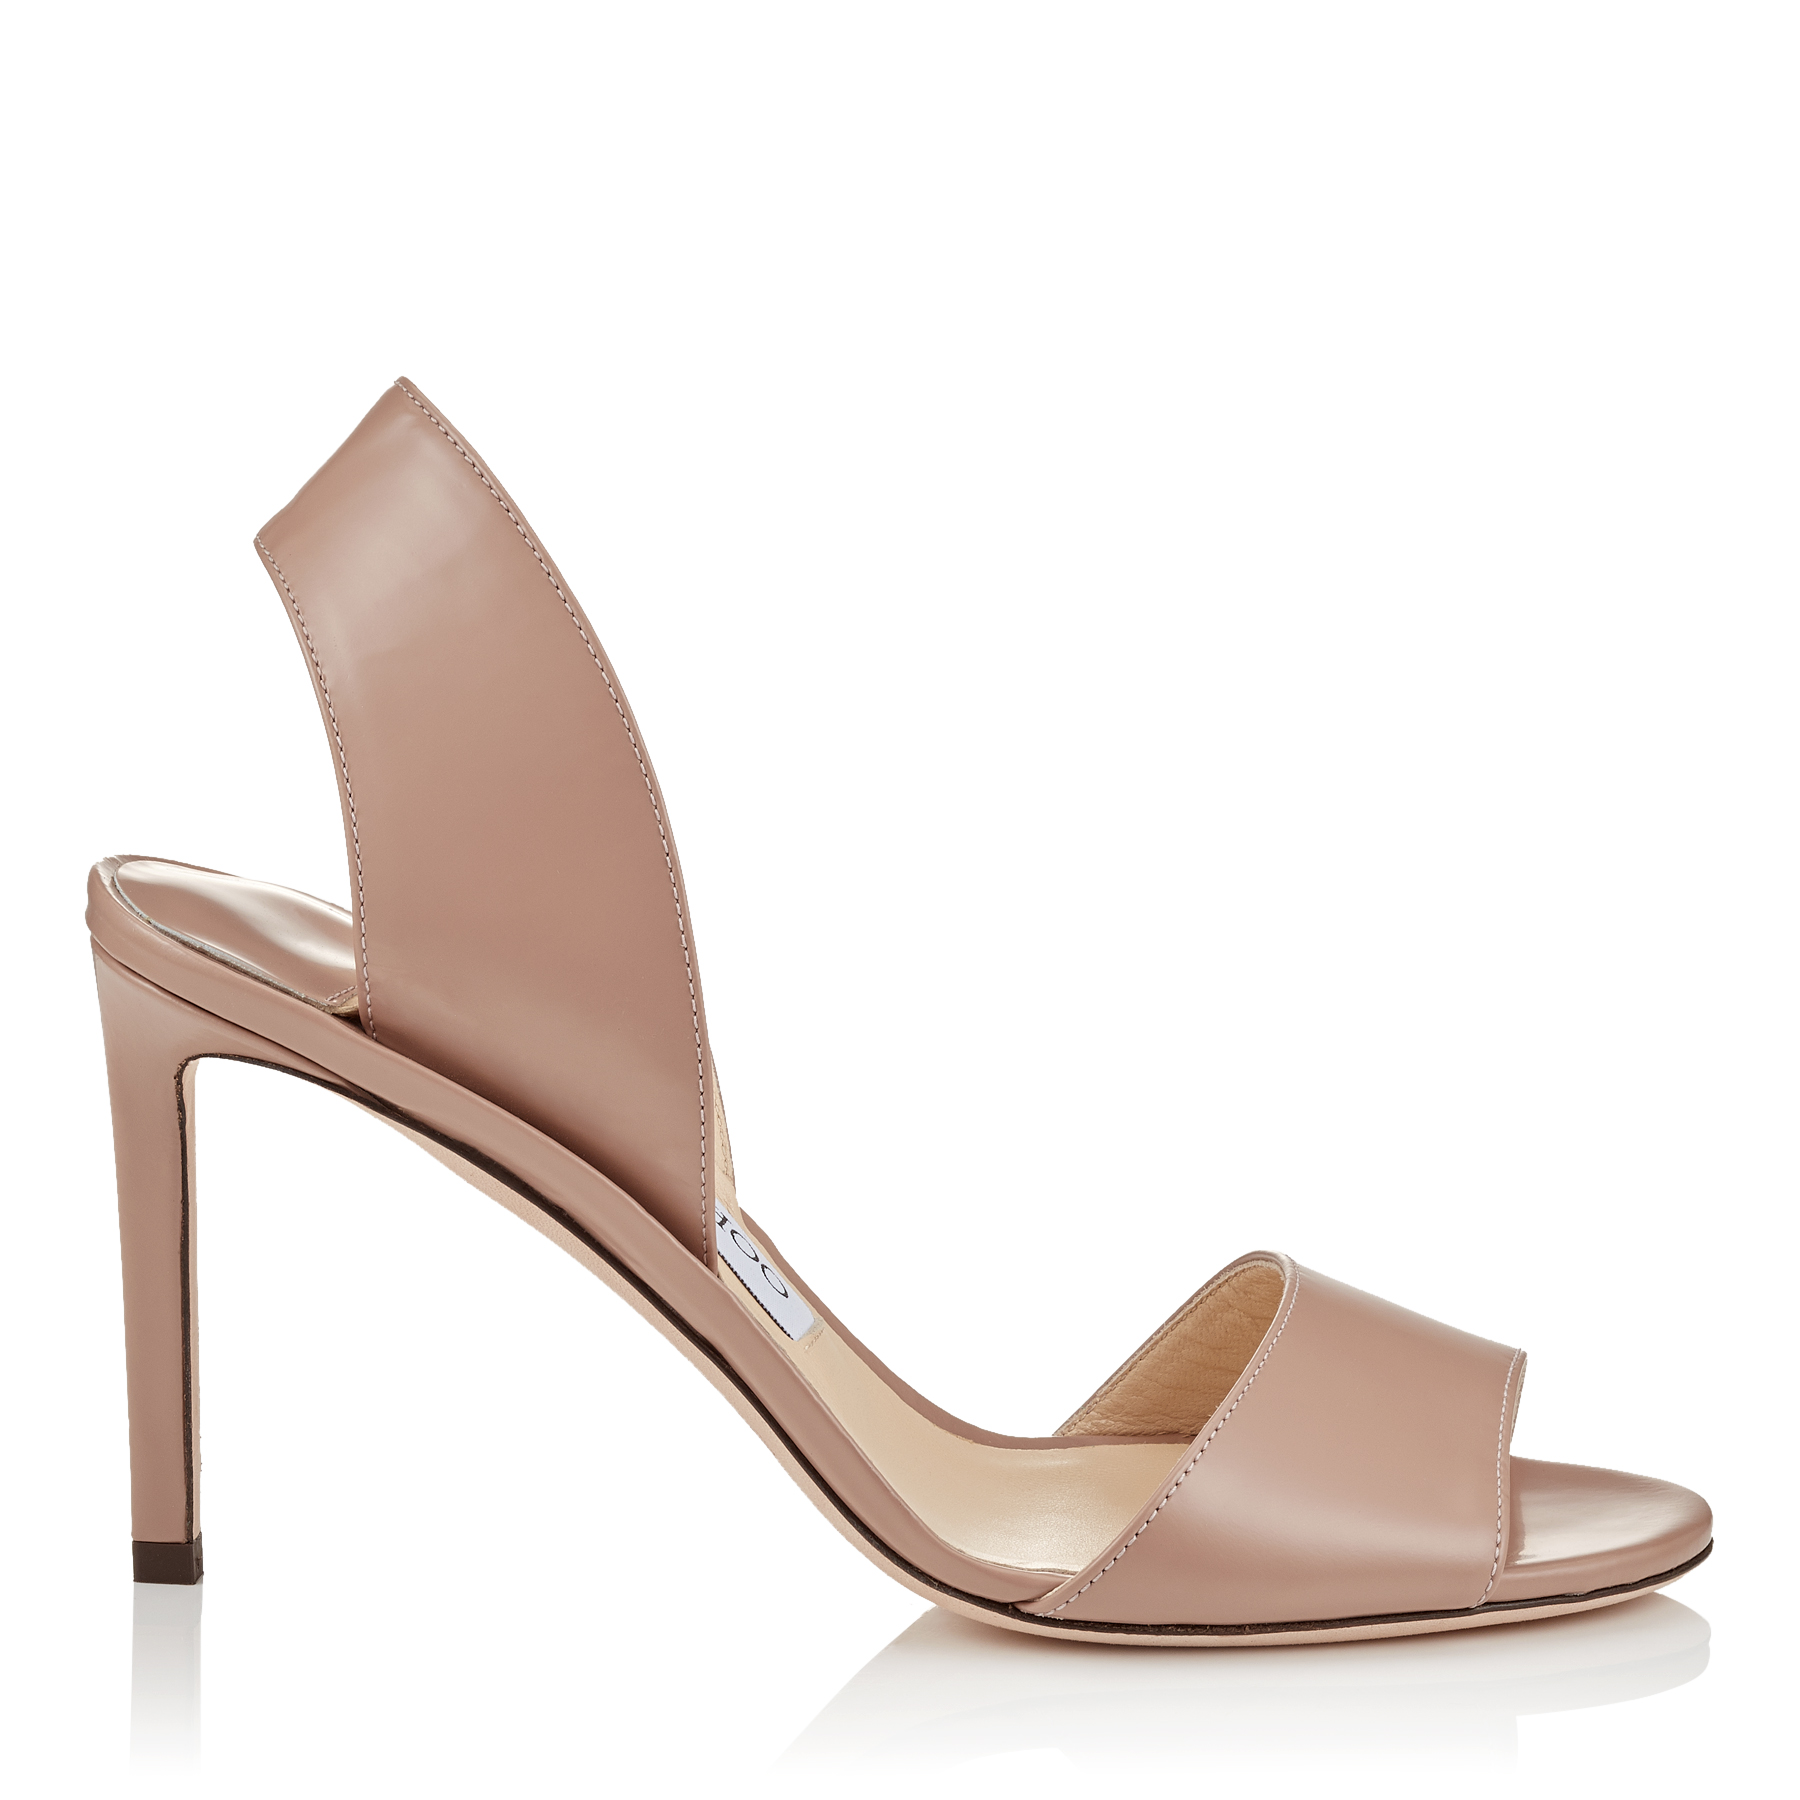 SHEILA 85 Ballet Pink Liquid Leather Mules by Jimmy Choo